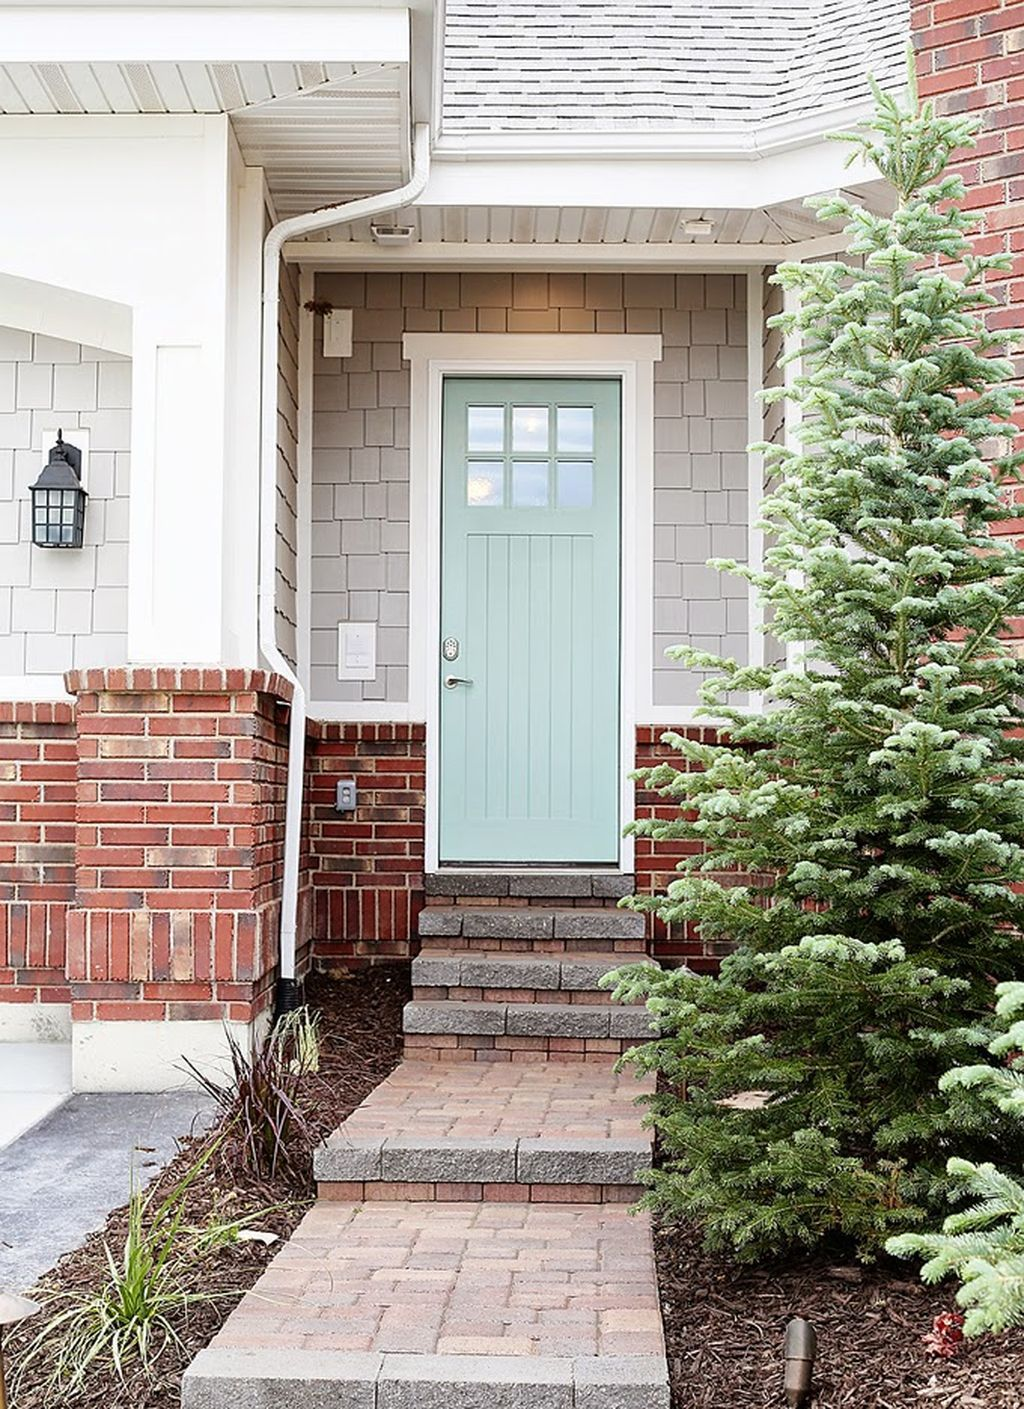 54 Exterior Paint Color Ideas With Red Brick | House paint ... on Brick House Painting Ideas  id=32946